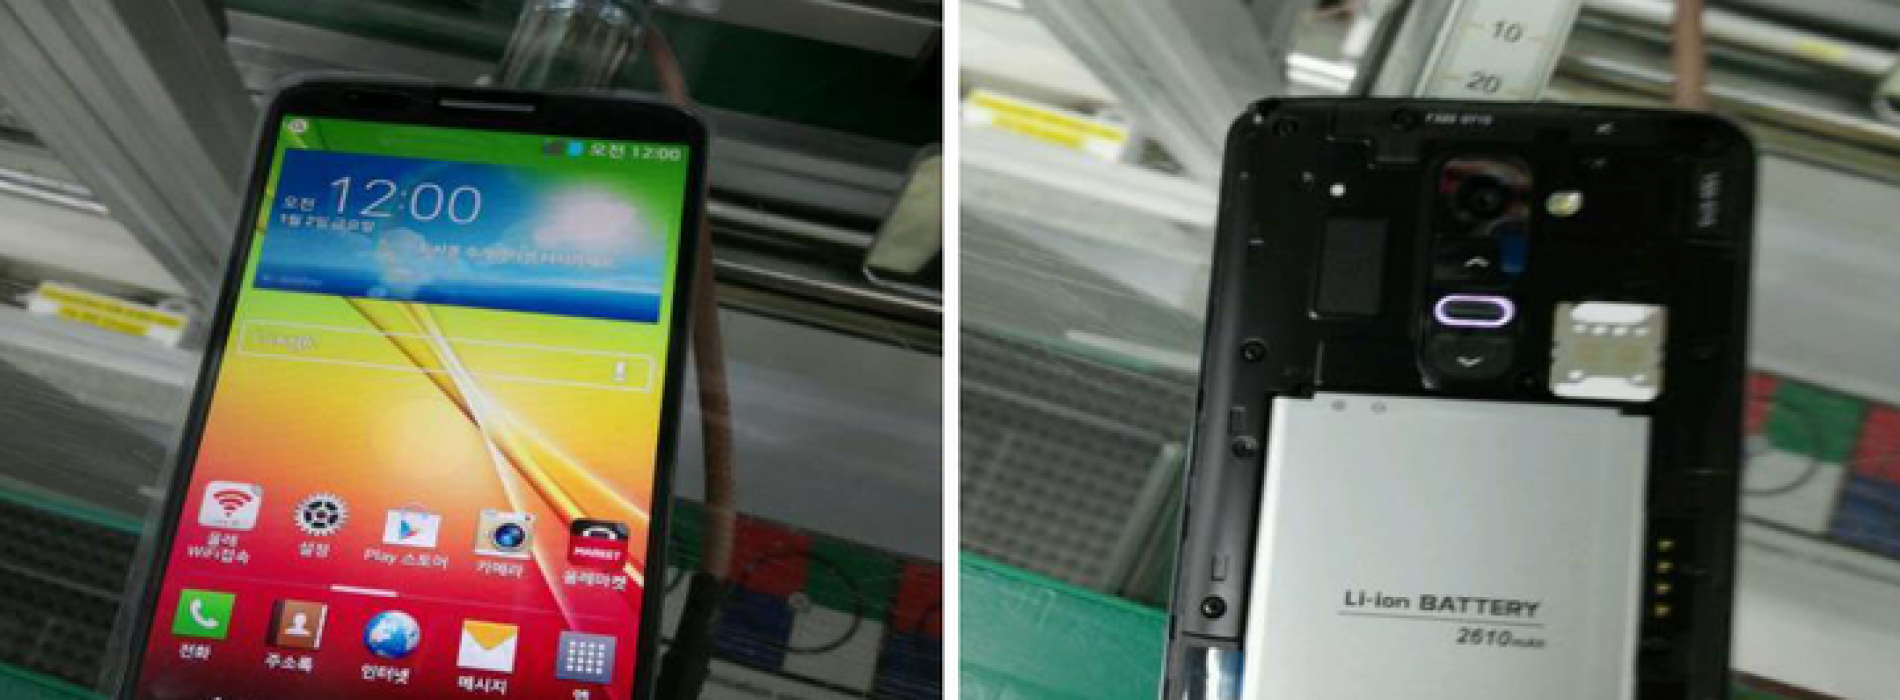 LG G2 leak shows off 2610 mAh battery, confirms display size